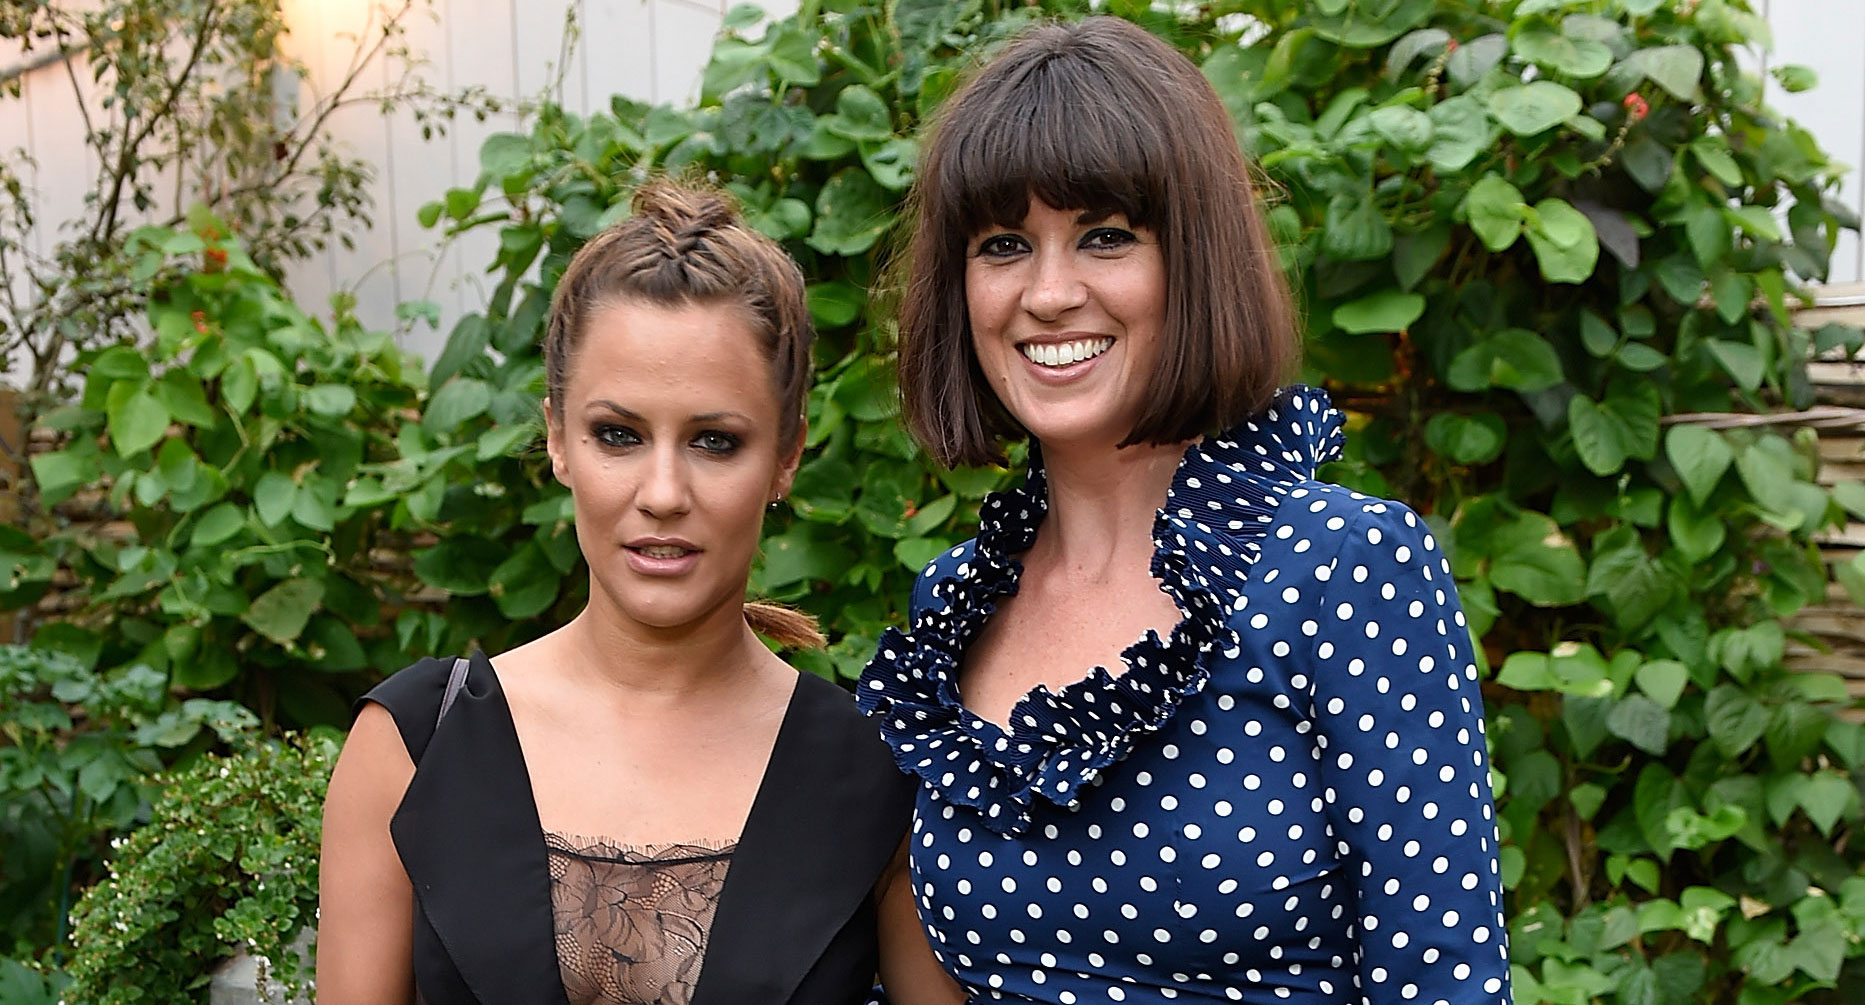 Dawn O'Porter has urged others not to send Caroline Flack's private messages to them. (Photo by David M. Benett/Dave Benett/Getty Images for John Lewis)